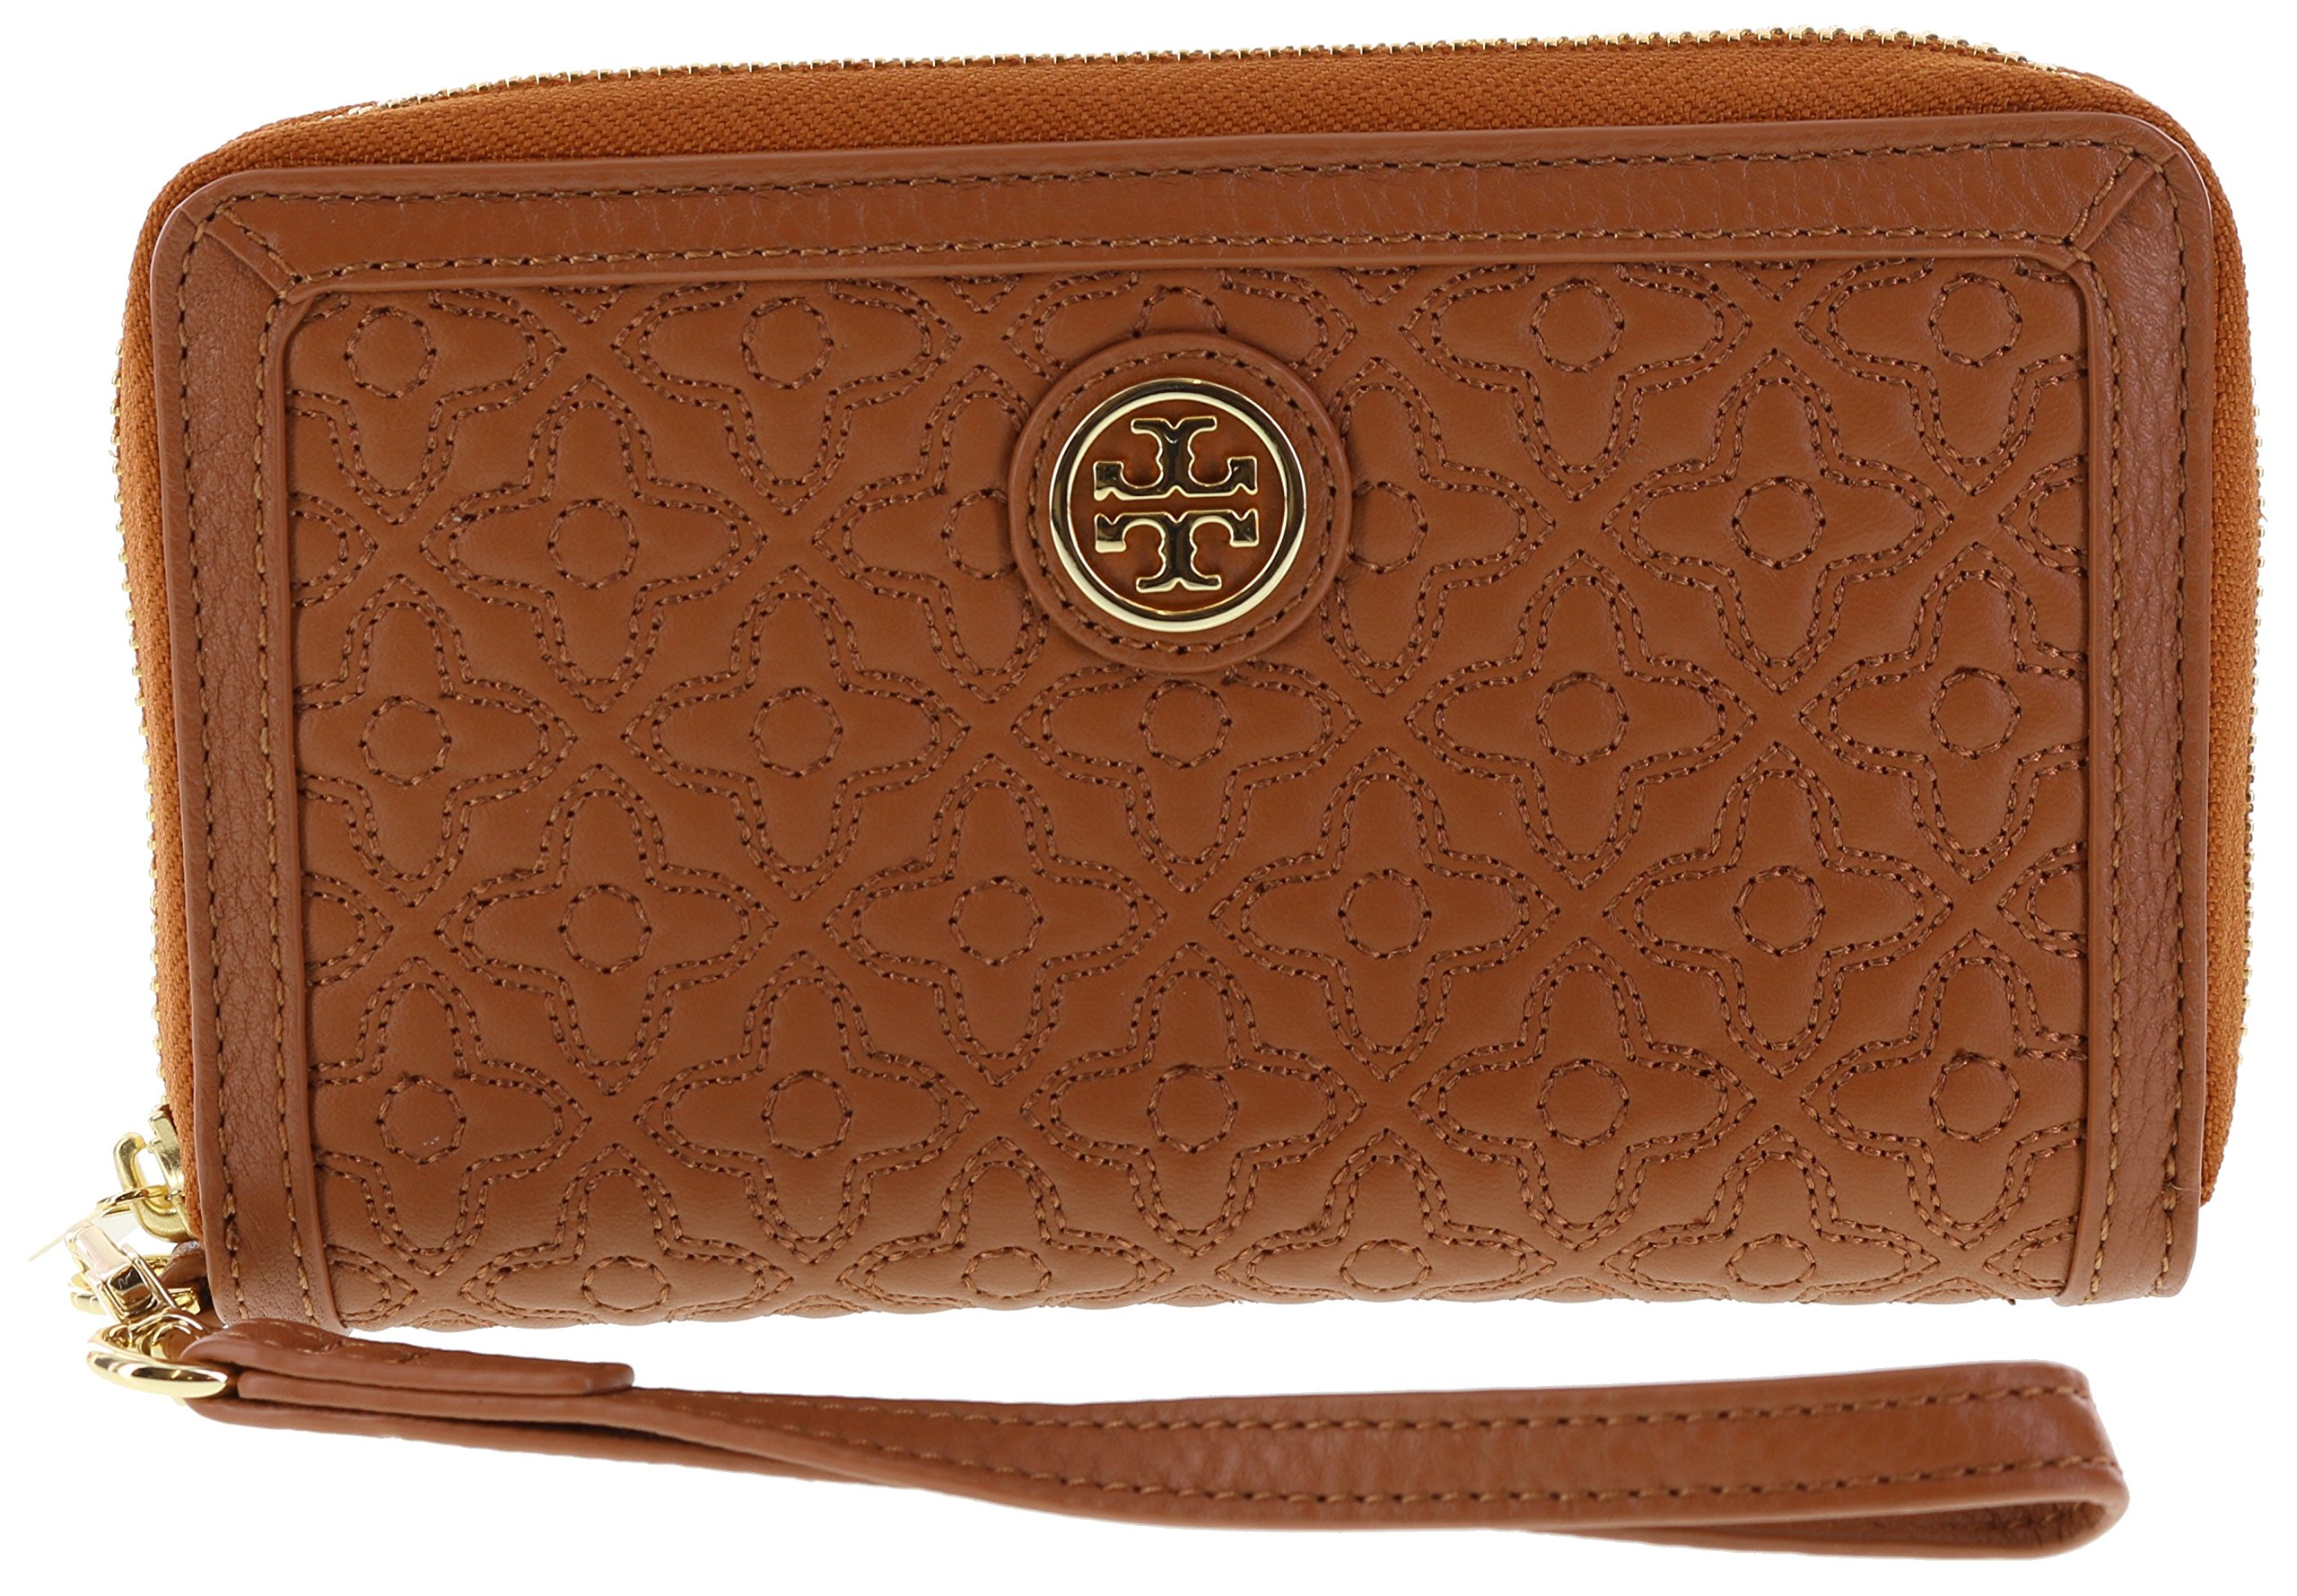 Tory Burch Bryant Smartphone Wristlet Wallet, Style No 34030 (Luggage)